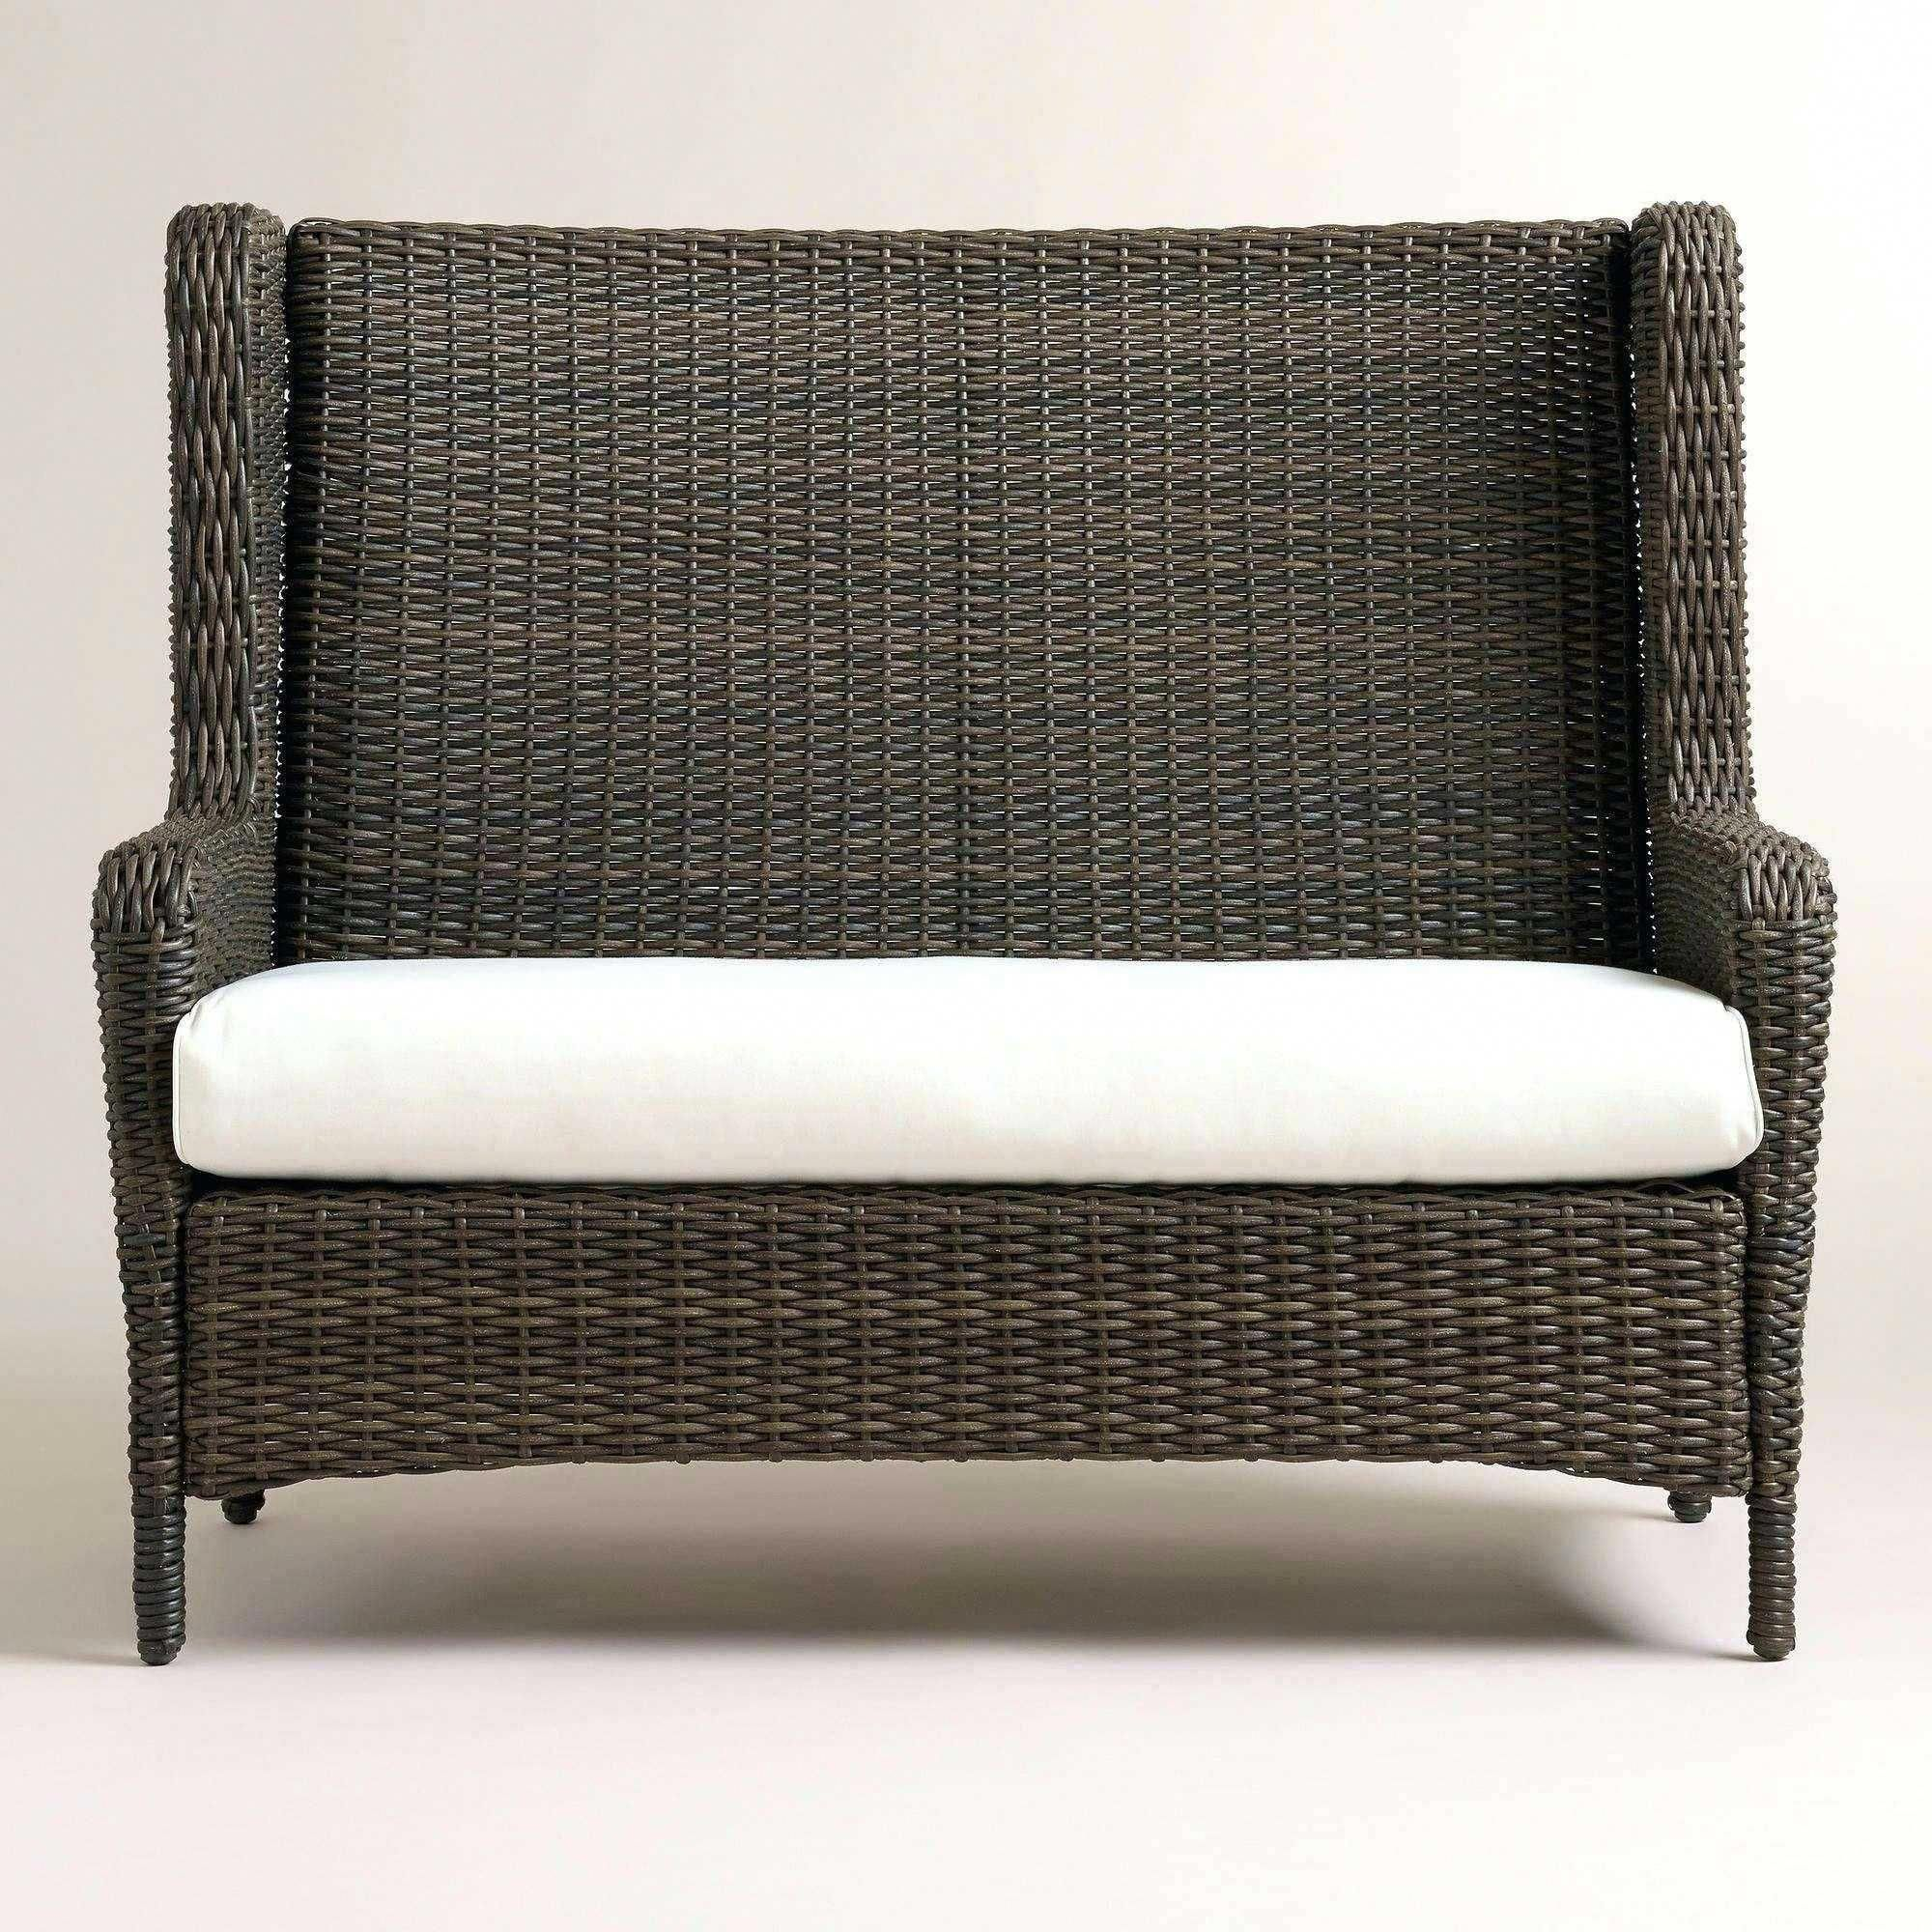 Gray Farmhouse Living Room Awesome Gray Farmhouse Living Room Farmhouse Living Room Decor B Patio Cushions Wicker Patio Furniture Clearance Patio Furniture